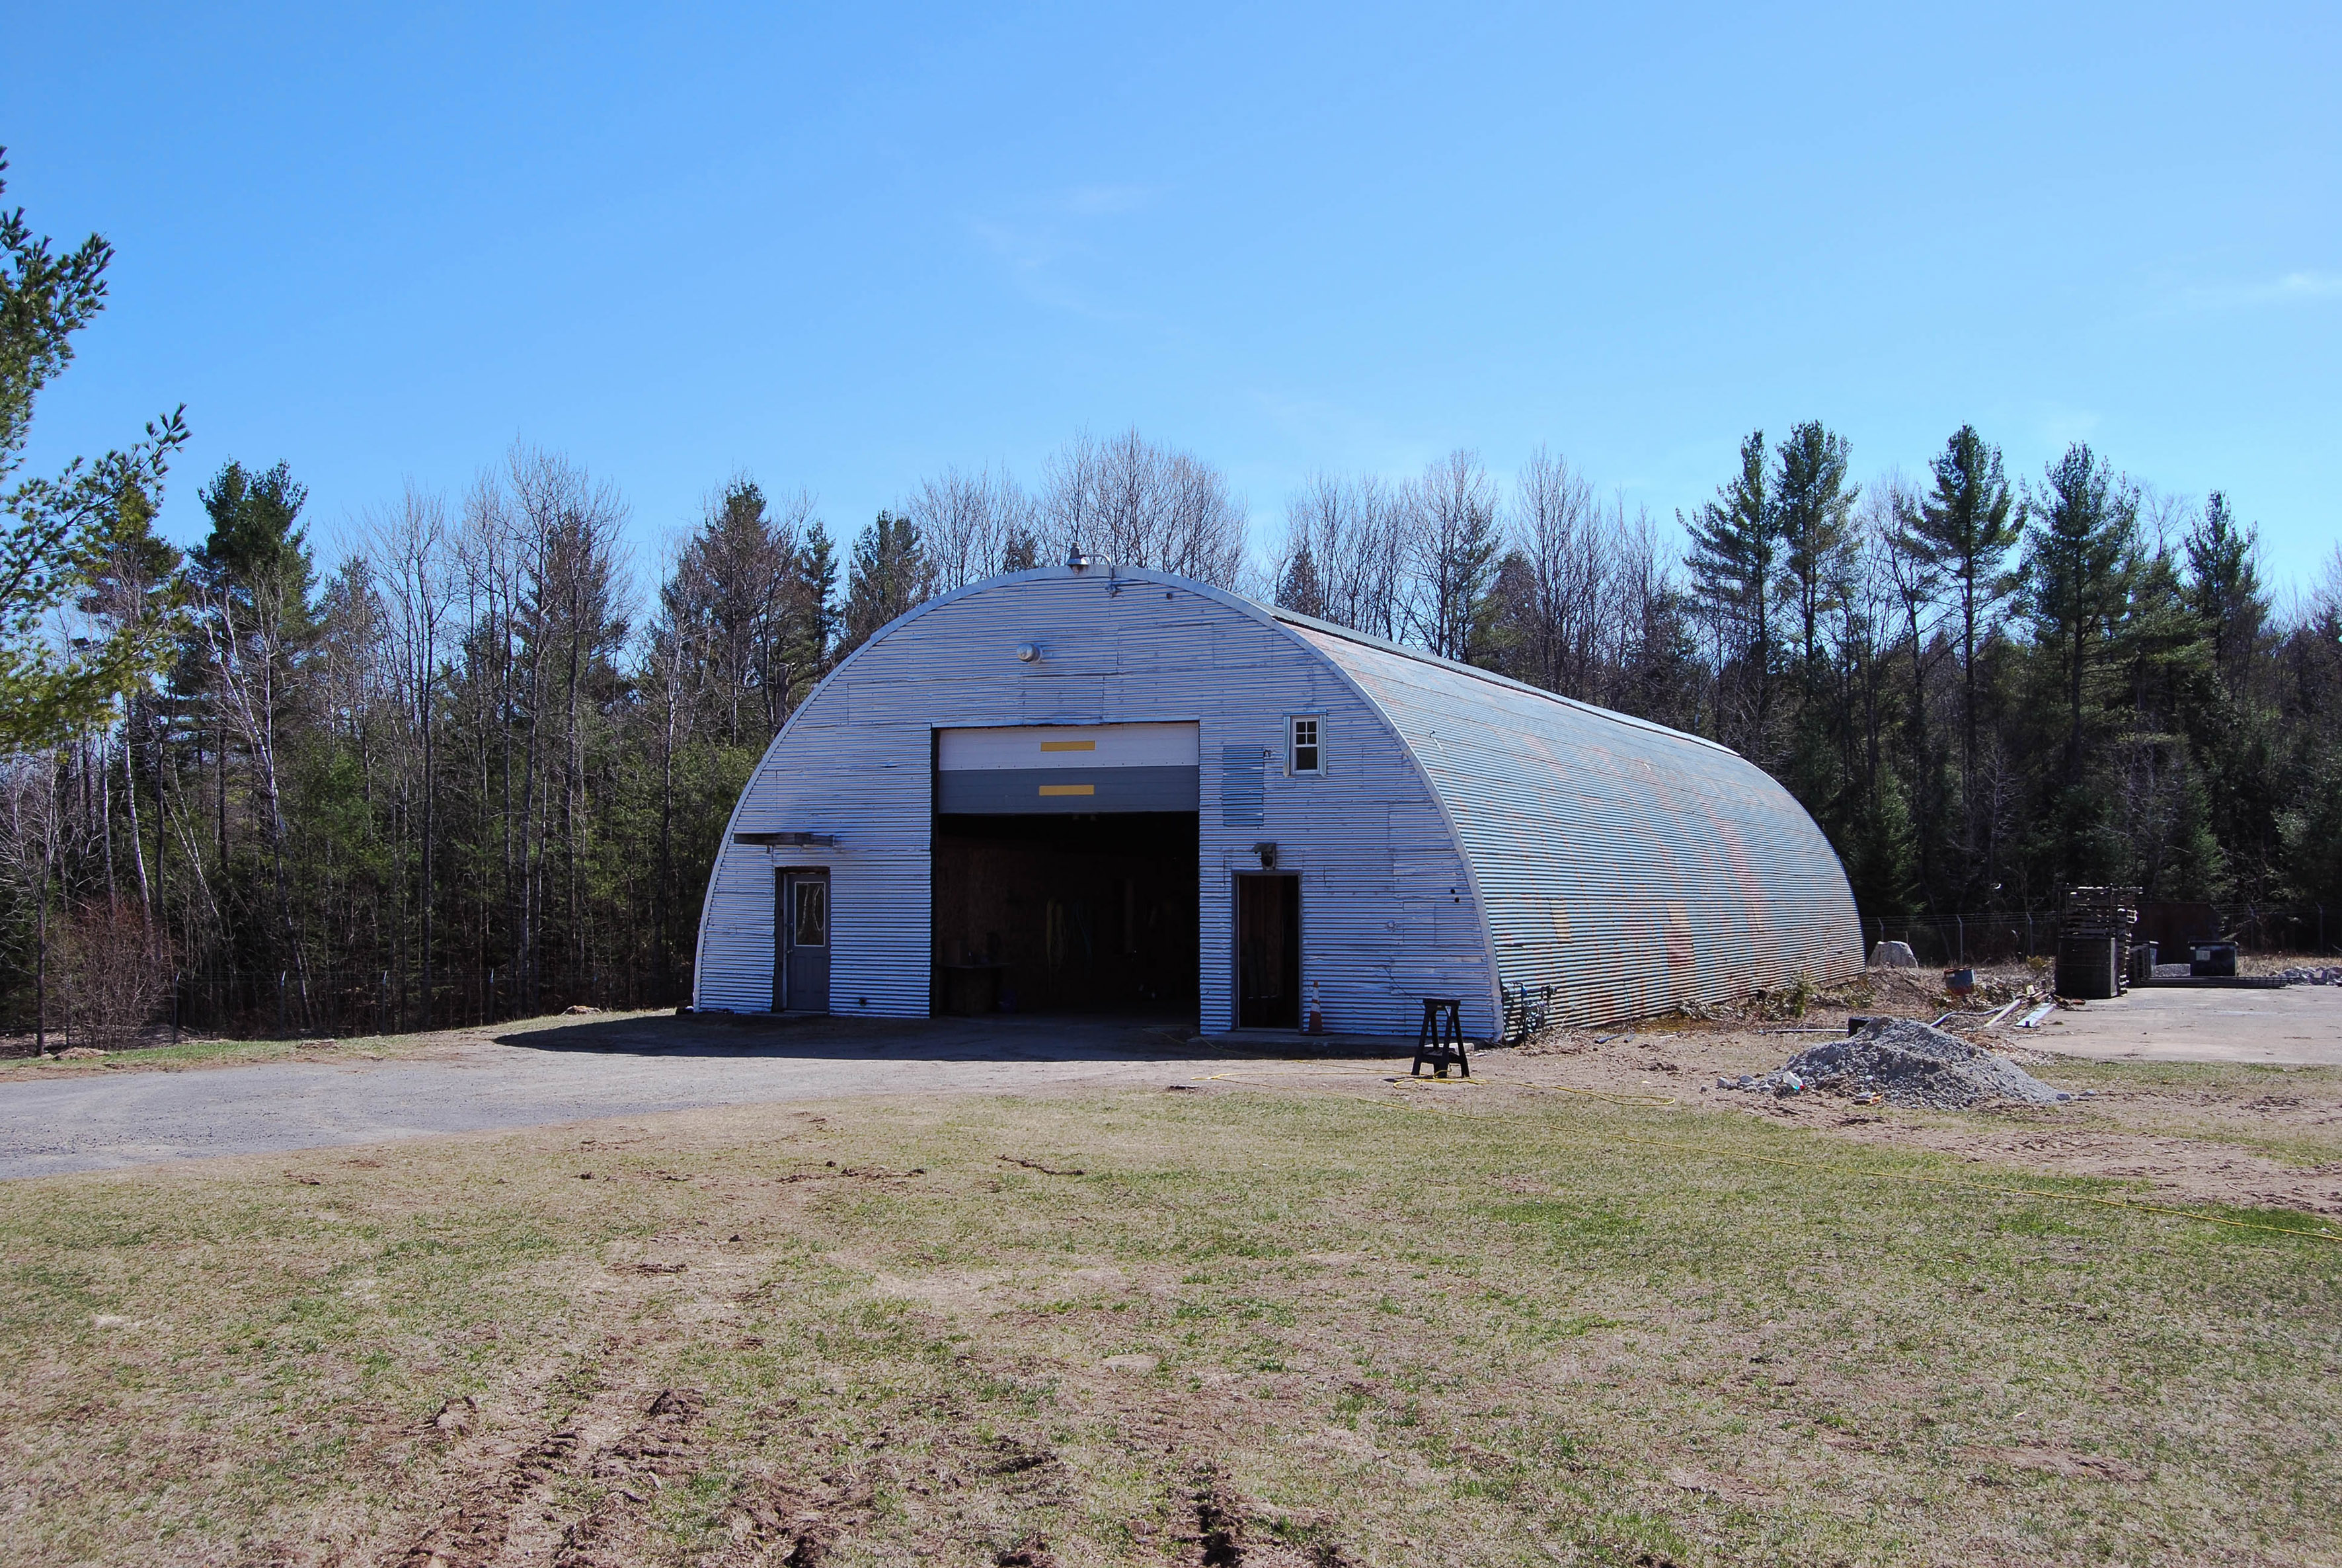 Nuclear Silo For Sale Disused Missile On Sale For Three Million Dollars Storytrender